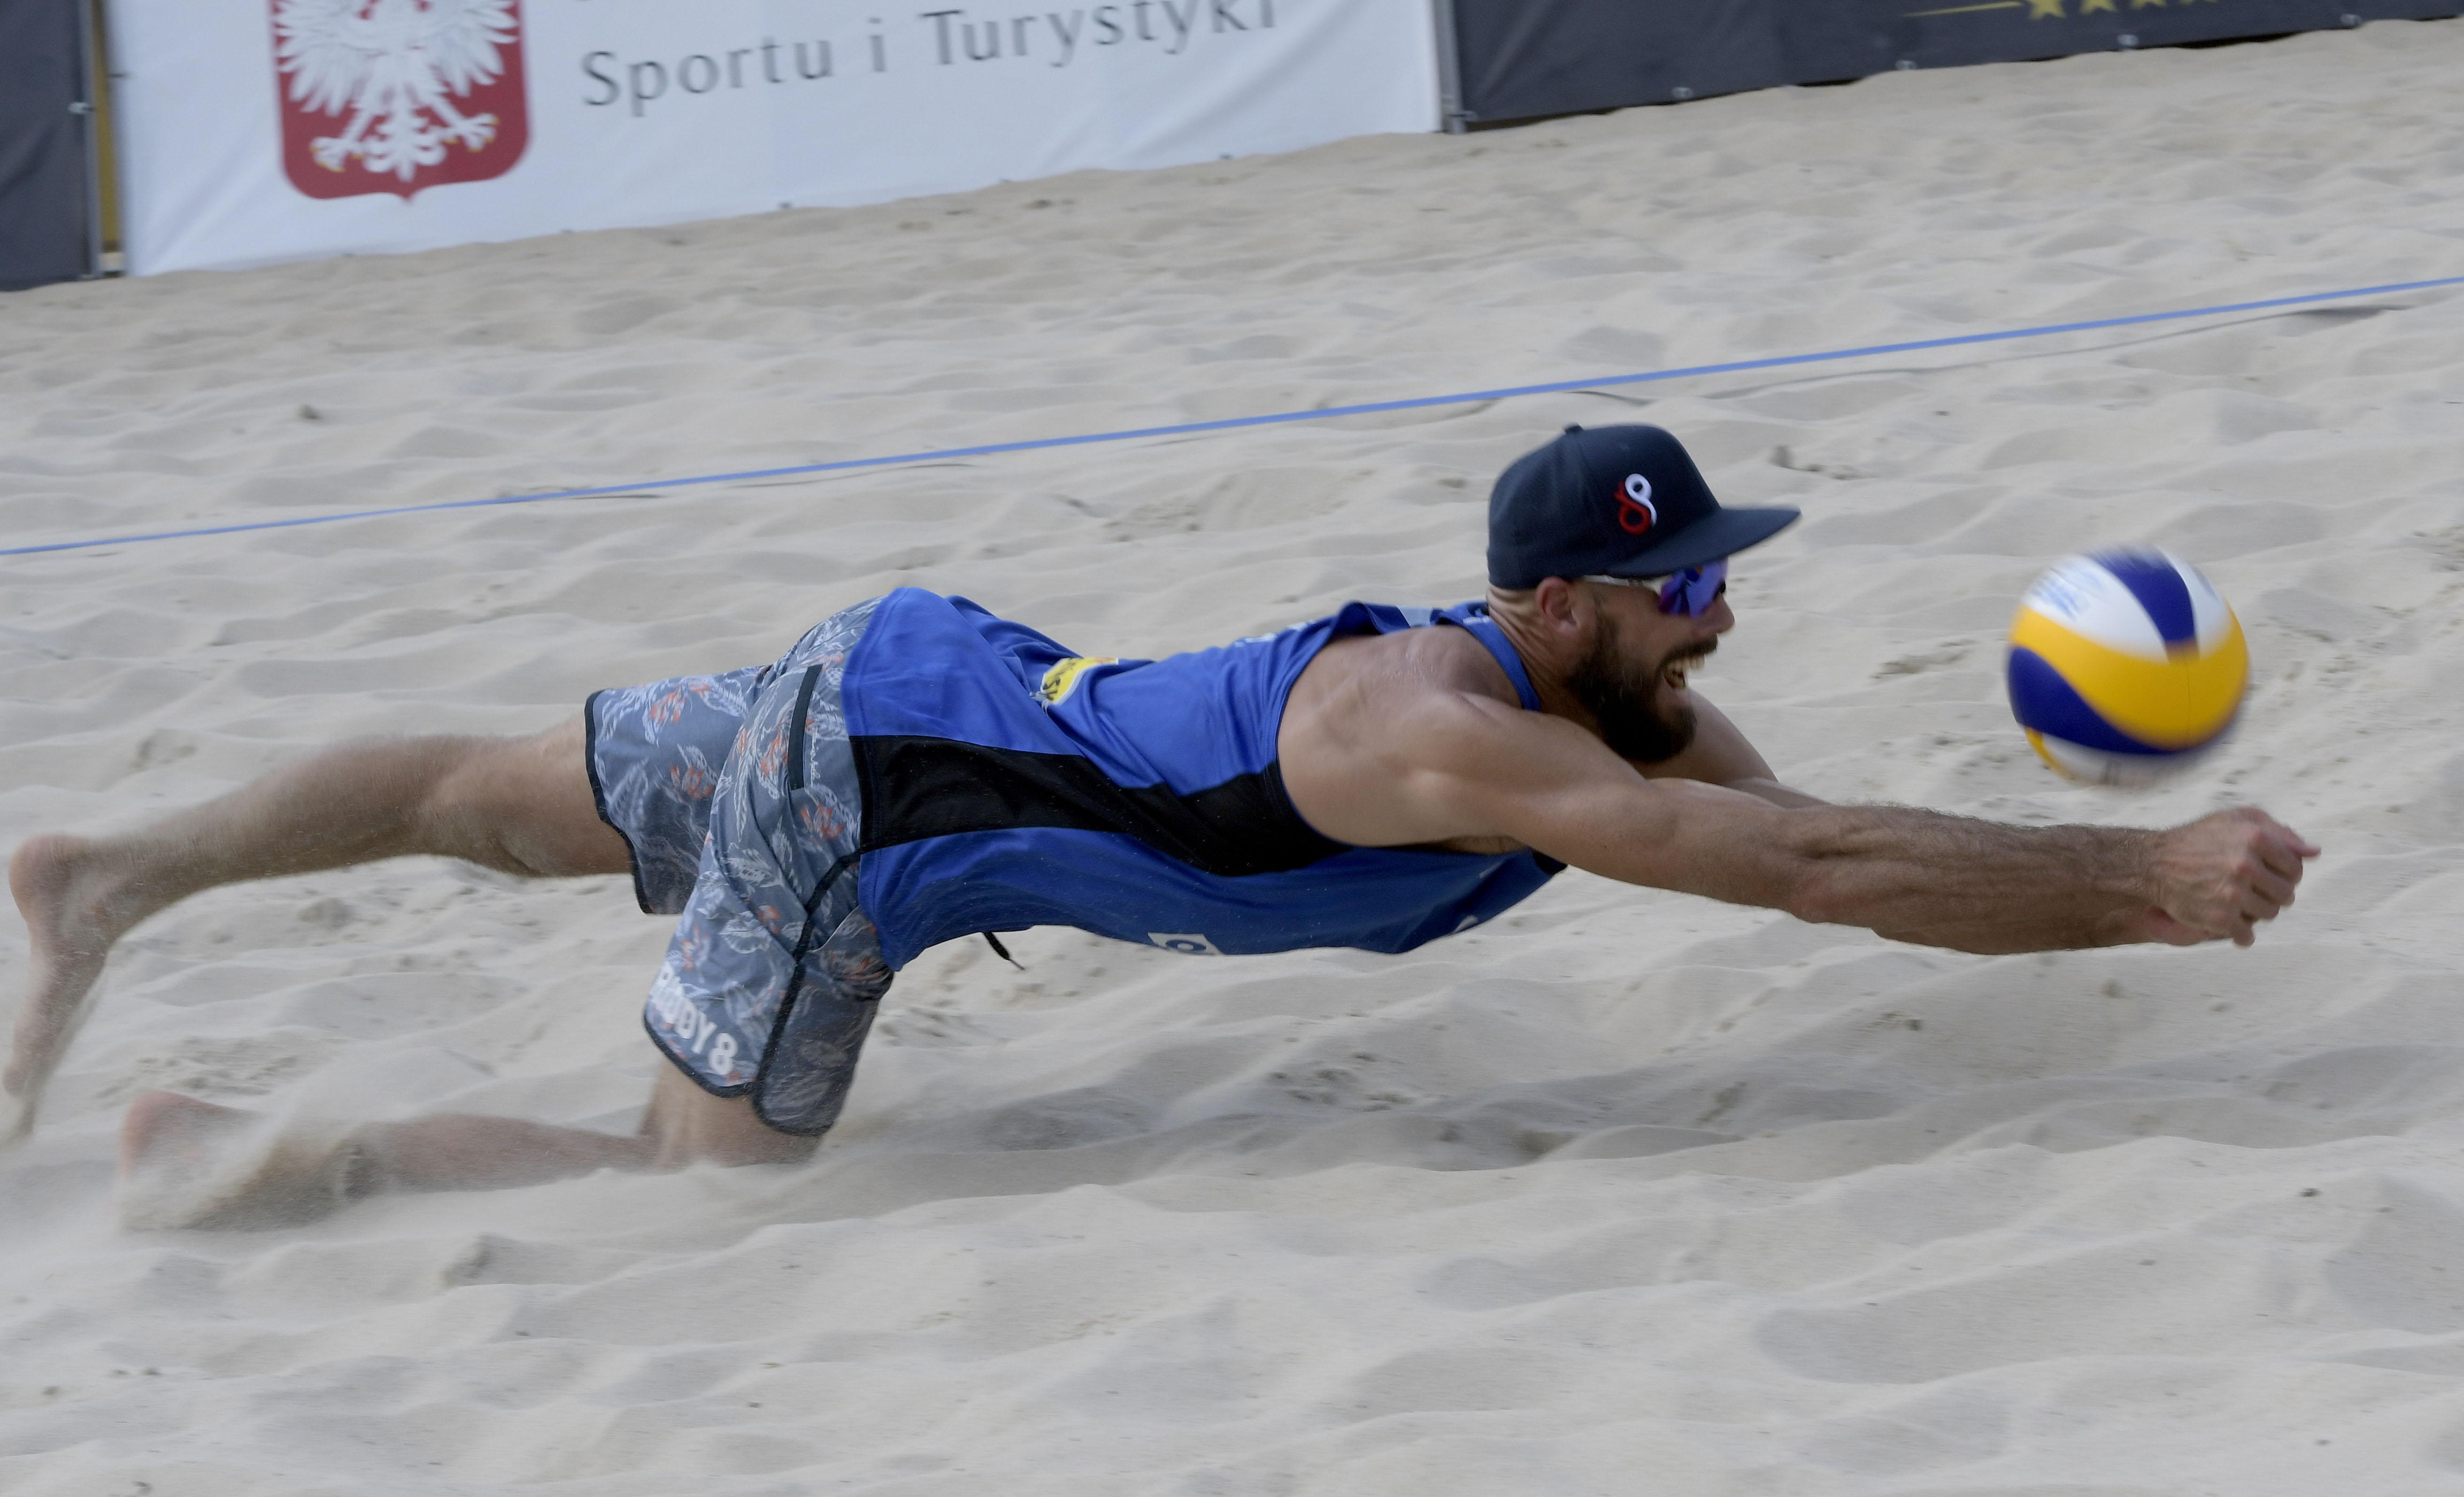 News - FIVB world champions Humana-Paredes & Pavan prevail on American sand